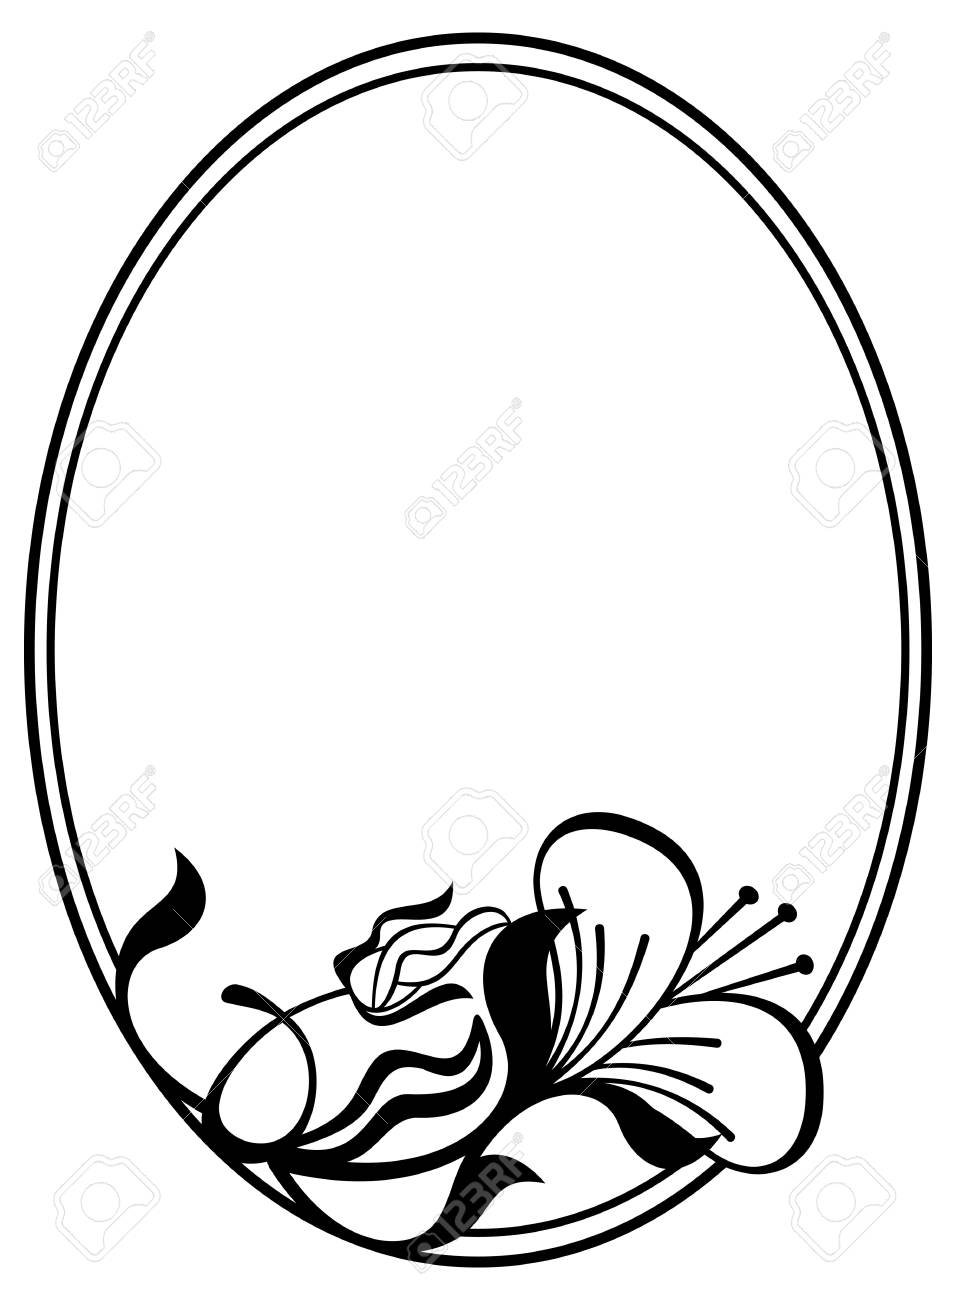 Silhouette Oval Frame With Abstract Flower Ornament. Design Element ...